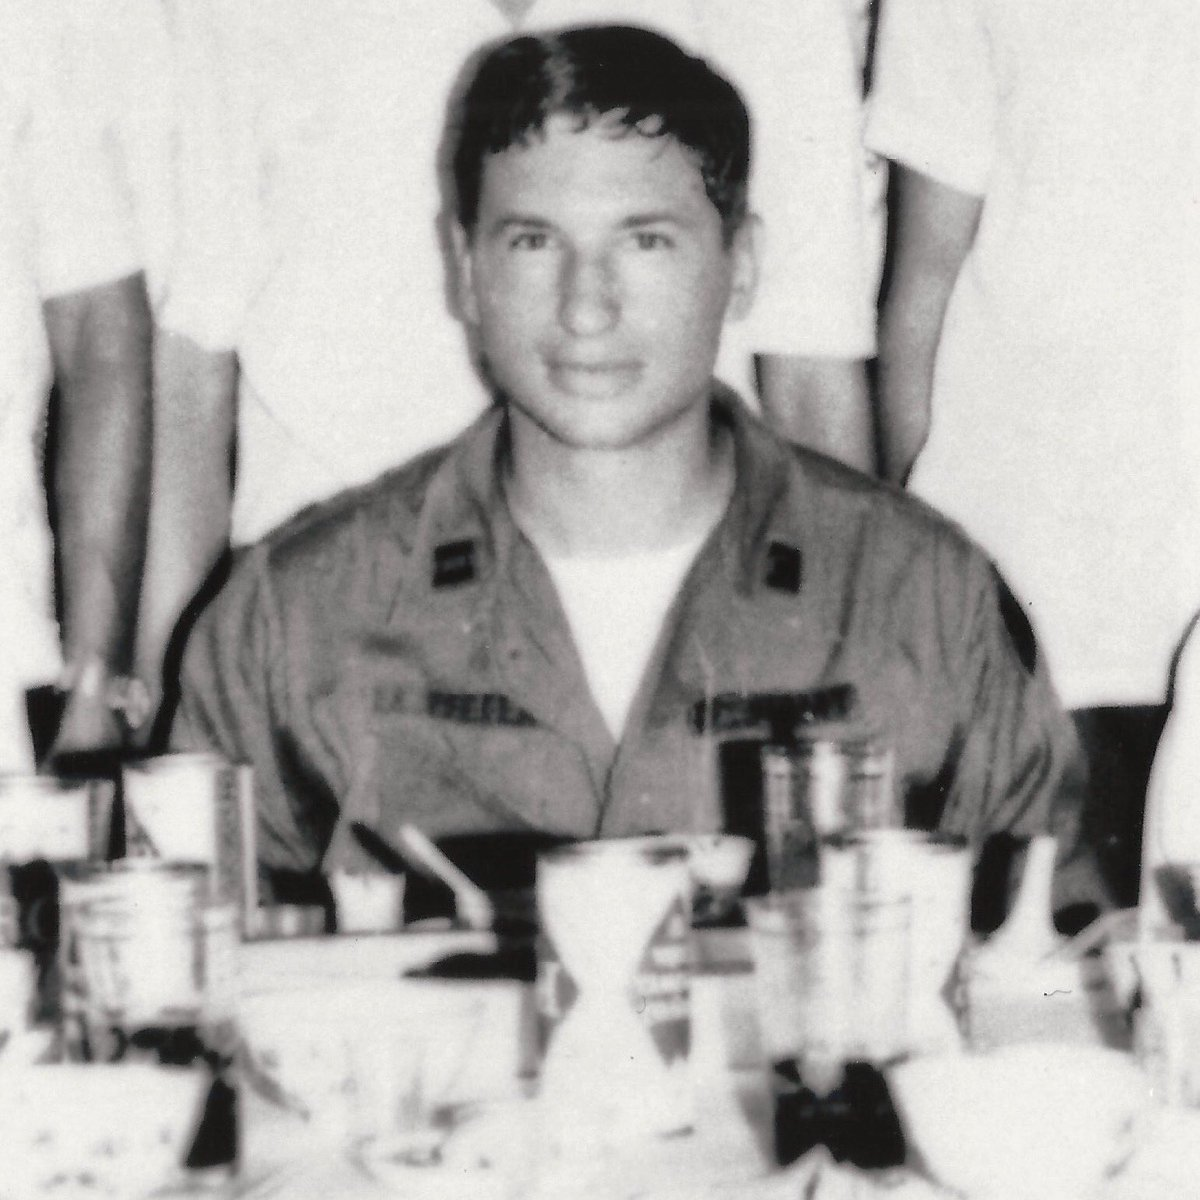 My dad, Artie, lost his life in service to our country in the Vietnam War. He and all who made the ultimate sacrifice fought for us, so let's honor them and the principles for which they served by repairing our divisions and become the UNITED States of America.🇺🇸#MemorialDay